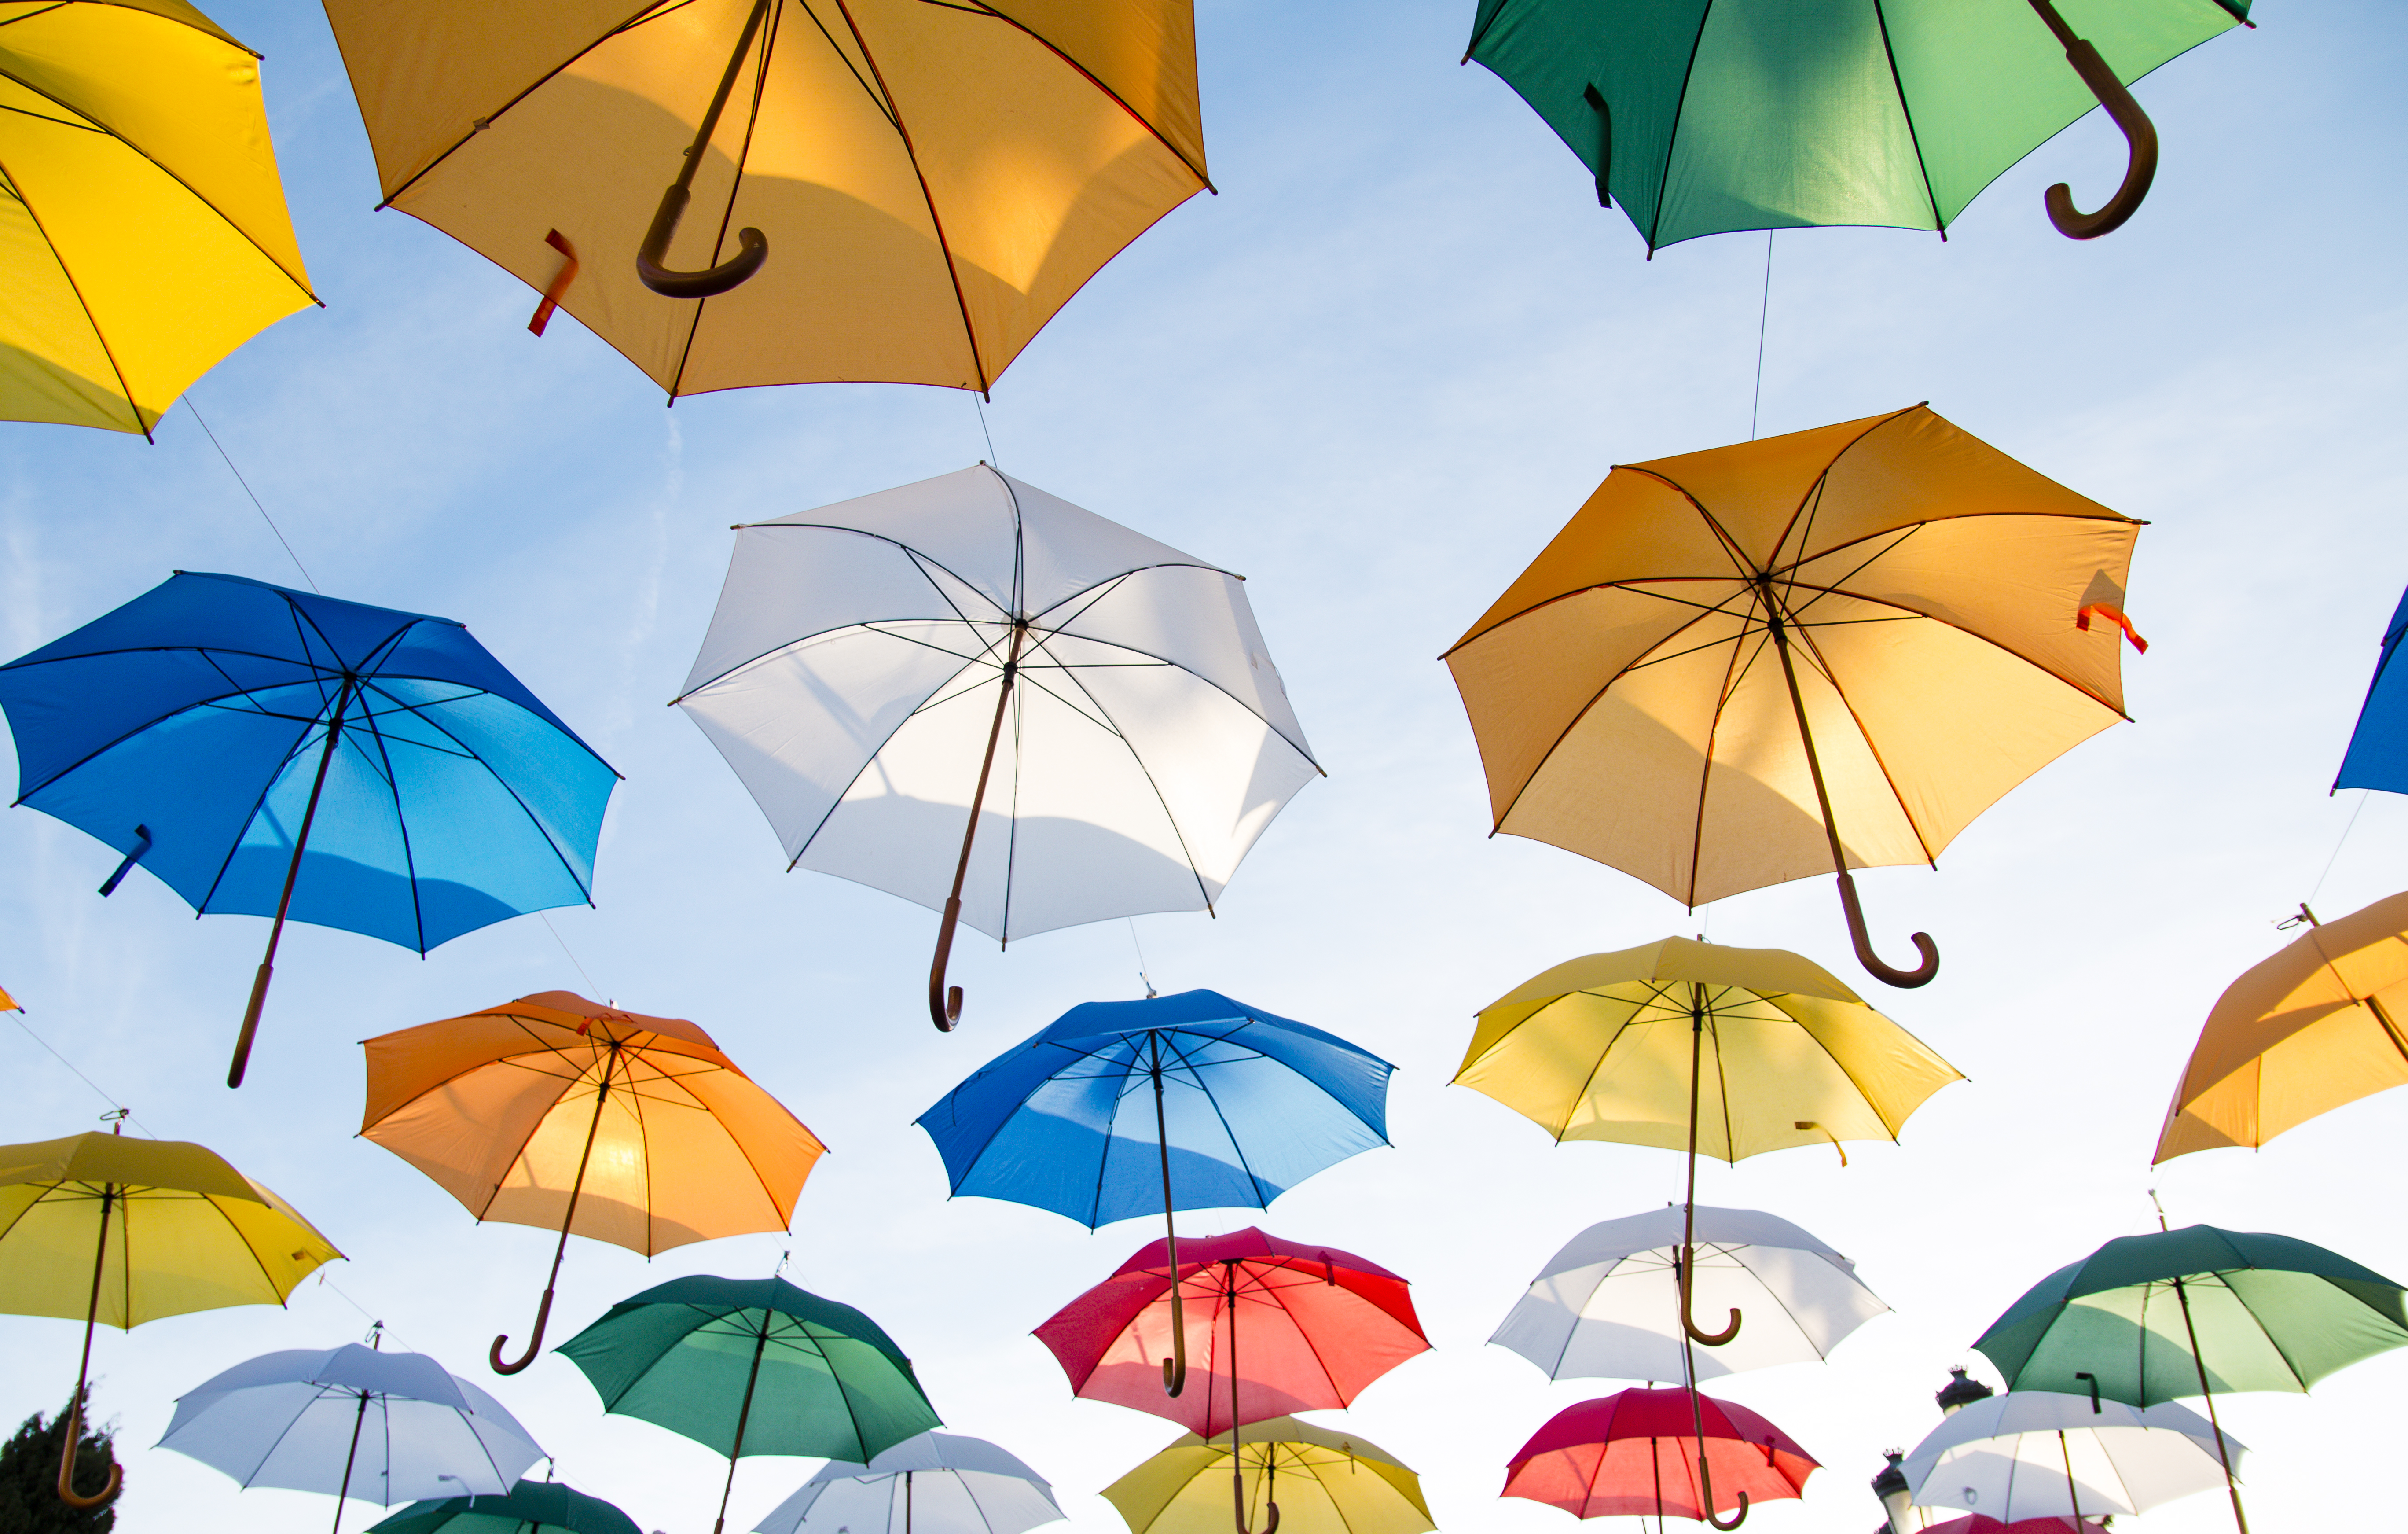 colorful umbrellas 5k retina ultra hd wallpaper and background image